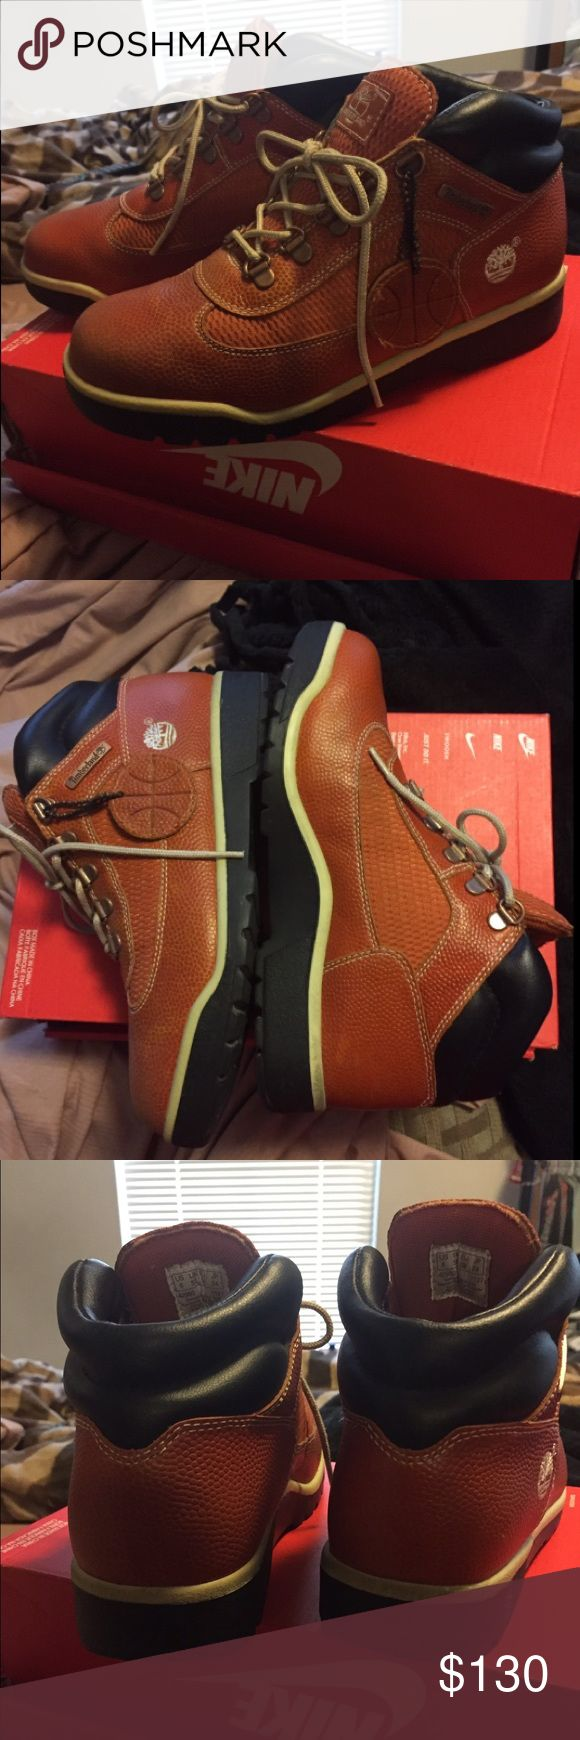 Timberland Field Boot Basketball Leather Limited E Timberland Field Boot Basketball Leather Limited Edition (Size Big Boys 6 Equivalent to Women's 7.5 ) - EXCELLENT CONDITION Timberland Shoes Boots